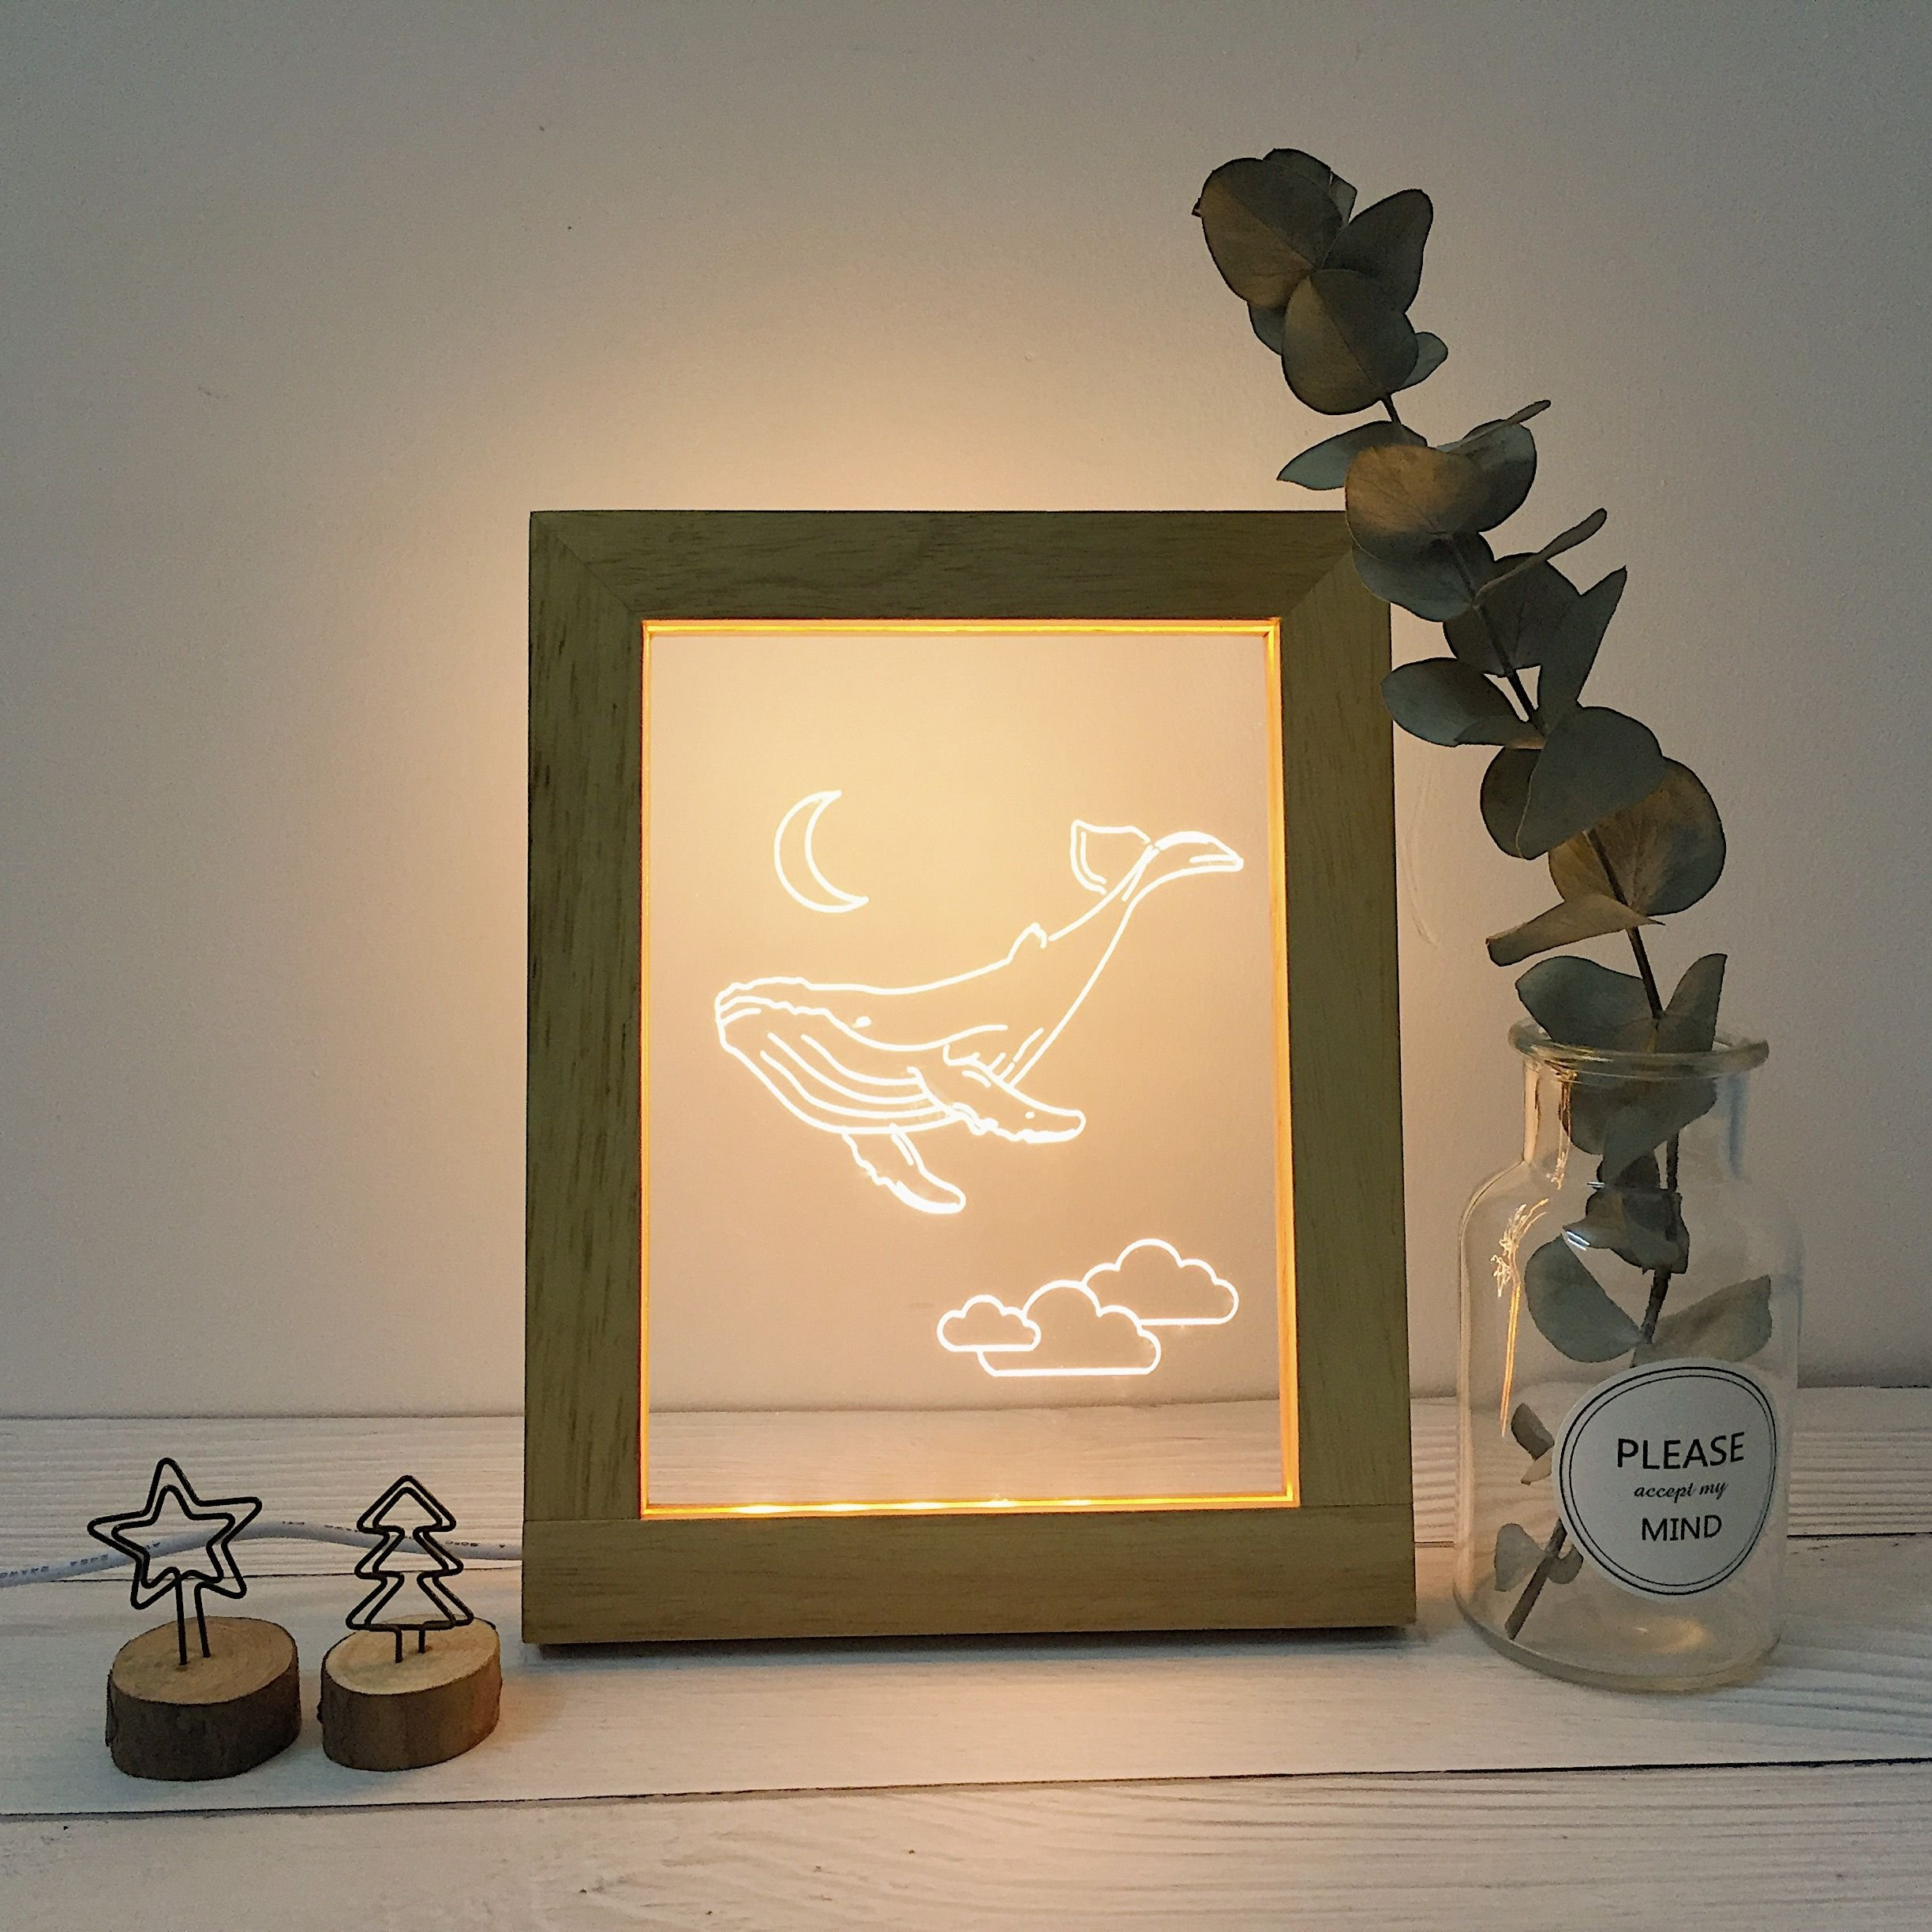 Wood Frame Night Lights, Soft Light Home Decor Lamp for Bedroom Living Room, Whale Night Light for Kids and Adults, Decorate Holiday Party Atmosphere, 4+ style 7.3x9.3x0.8 inches (Cetacean-02)